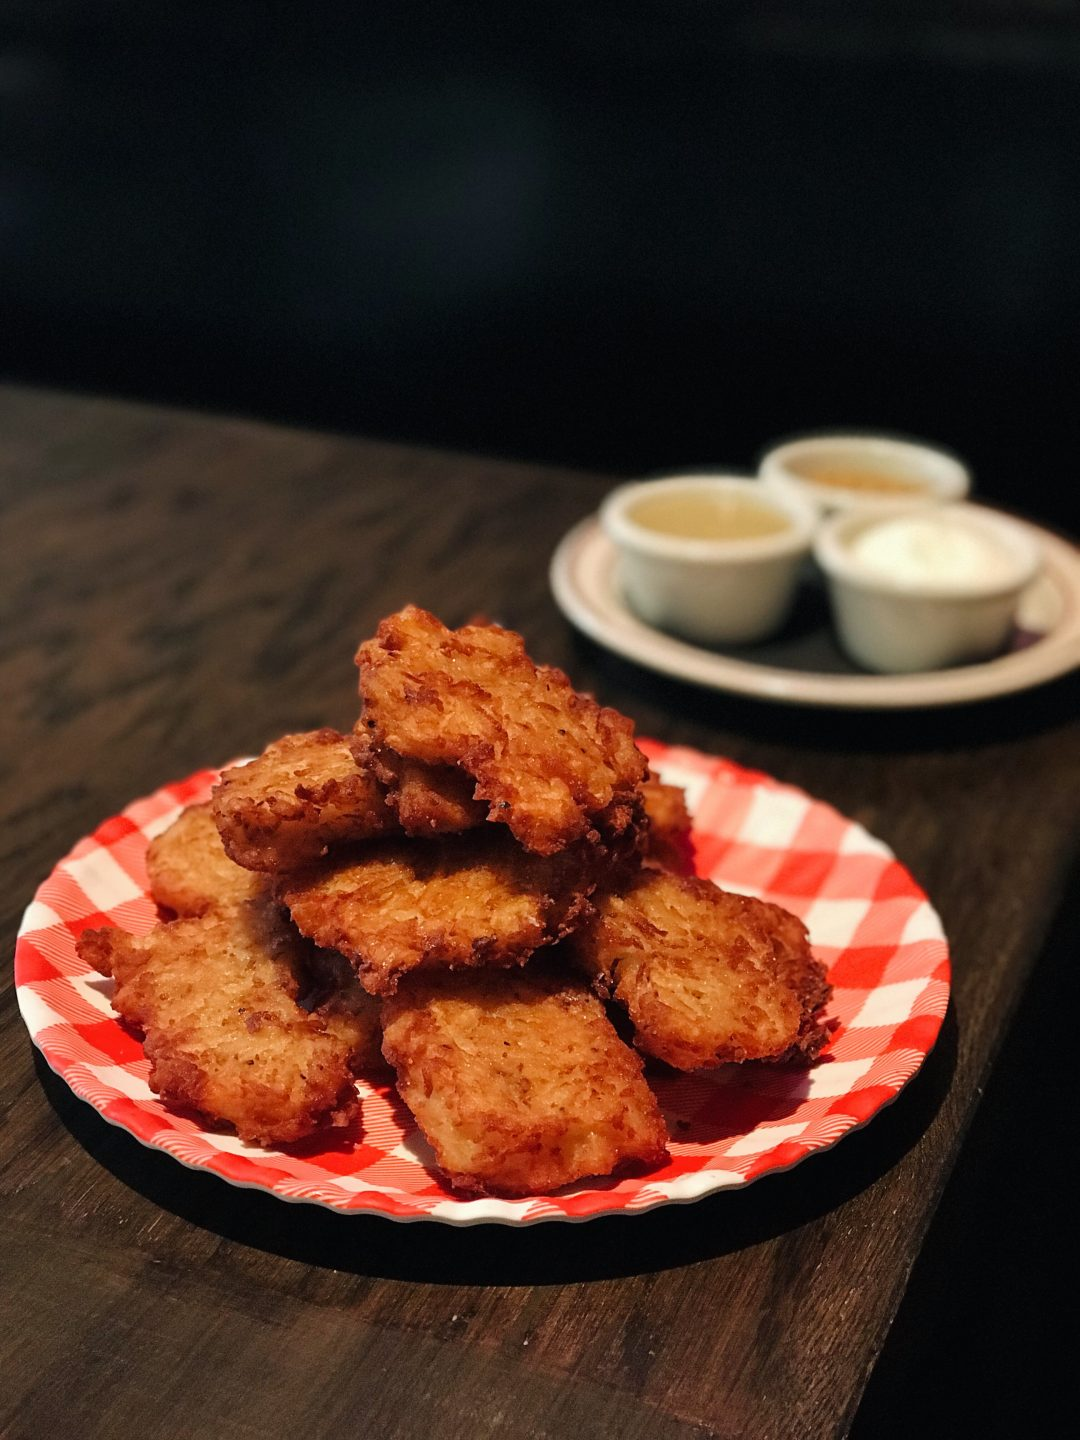 Bub City's Latkes served with house made applesauce and sour cream